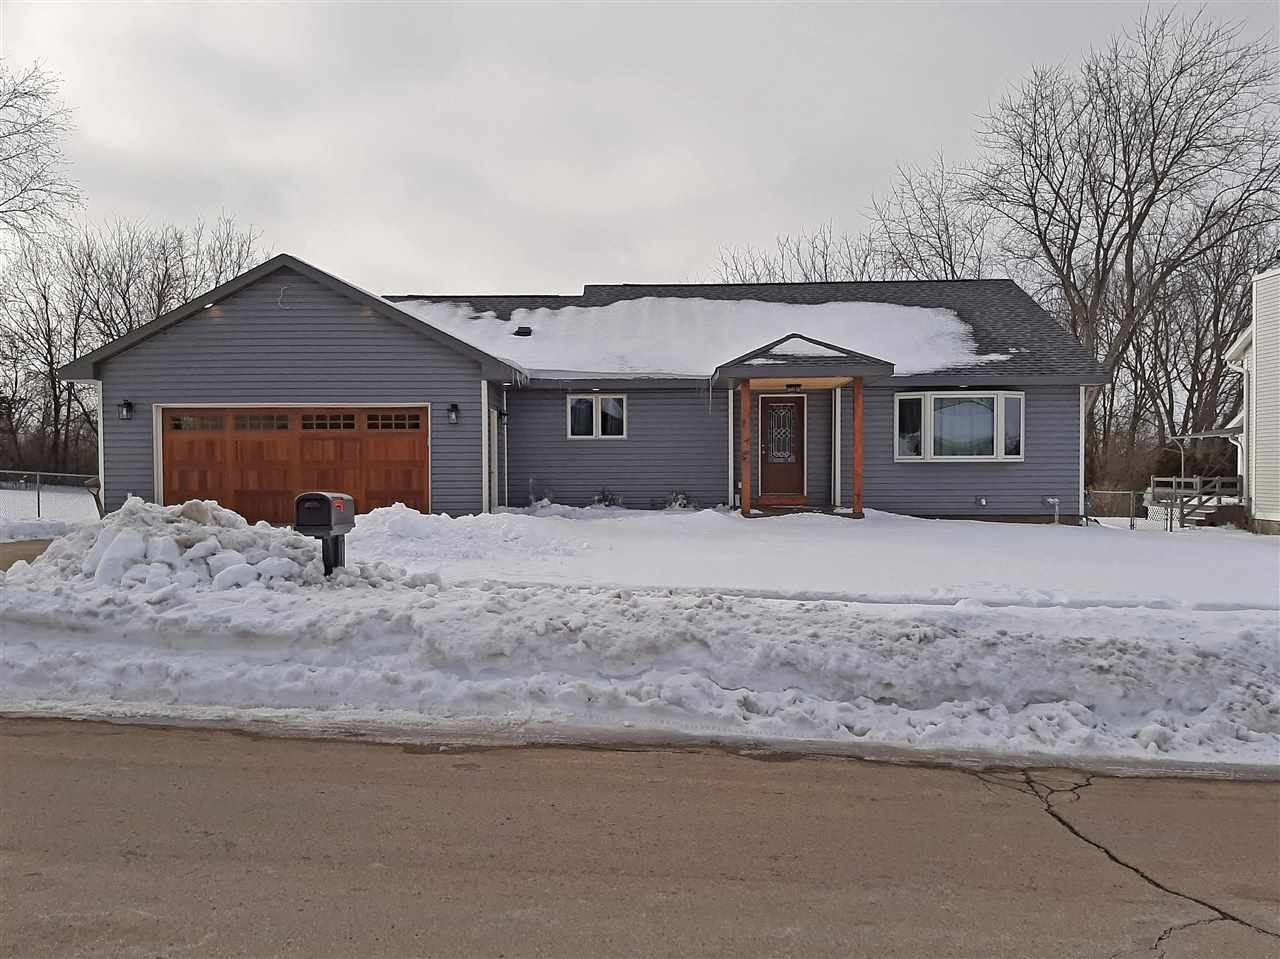 123 22nd Ave, Monroe, WI 53566 - #: 1900609